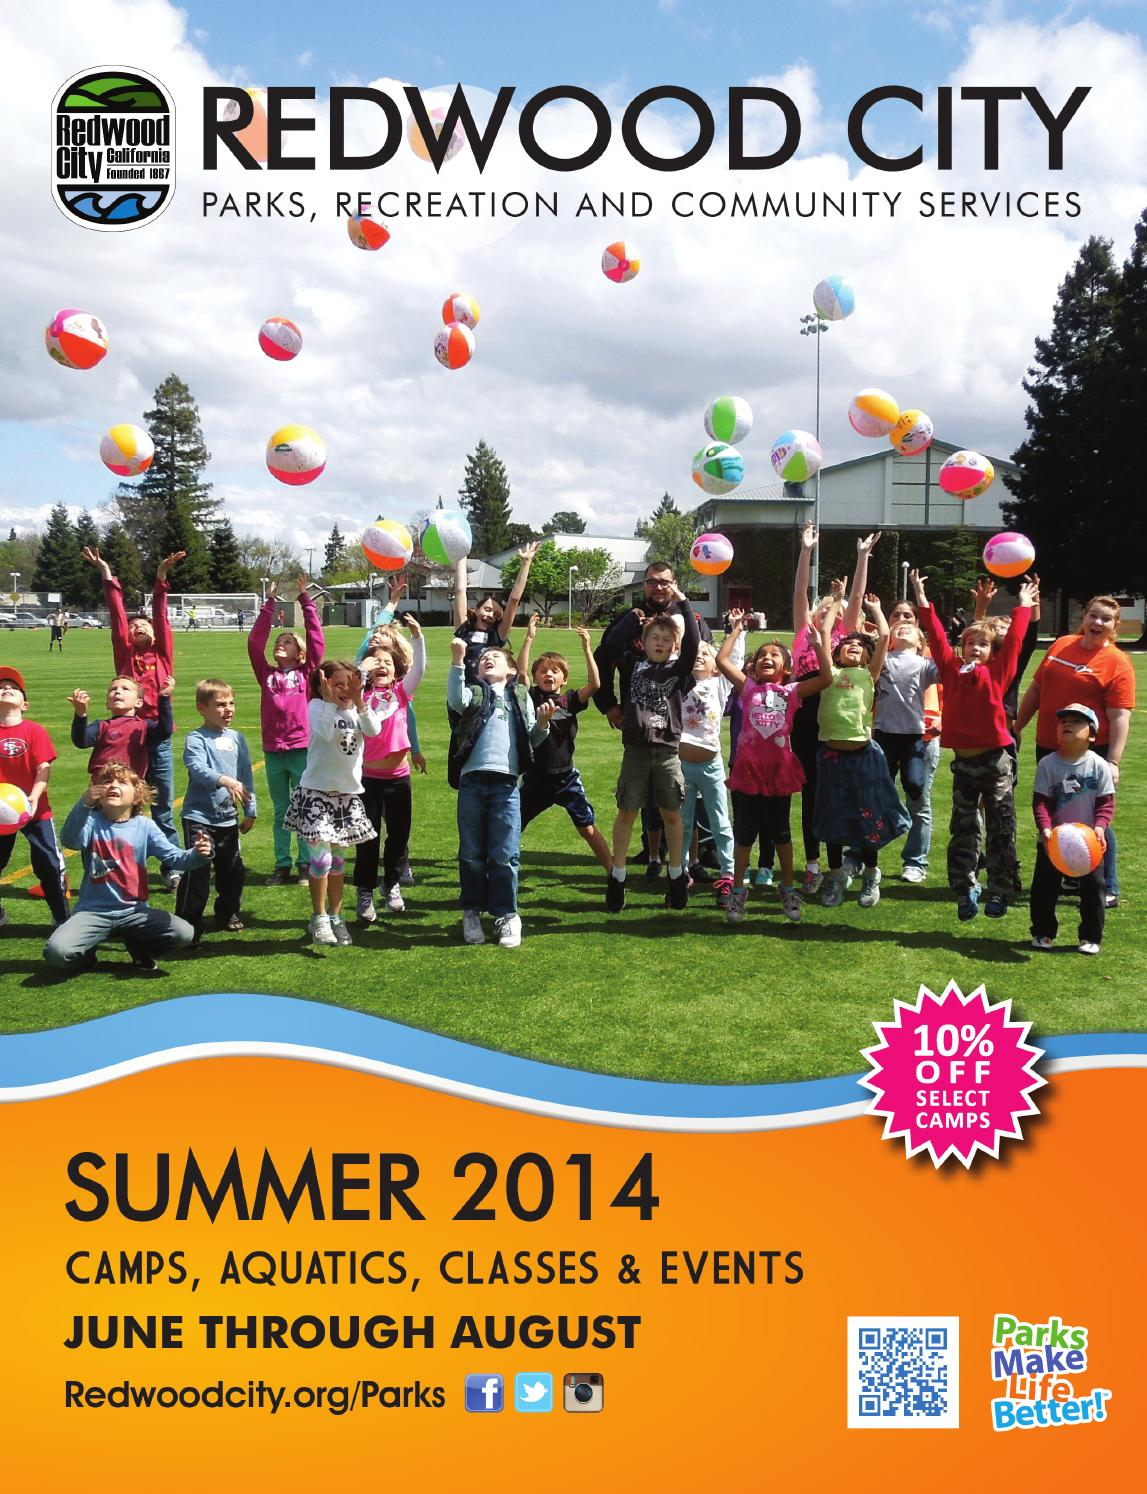 redwood city summer 2014 activity guide by redwood city parks redwood city summer 2014 activity guide by redwood city parks recreation community services issuu